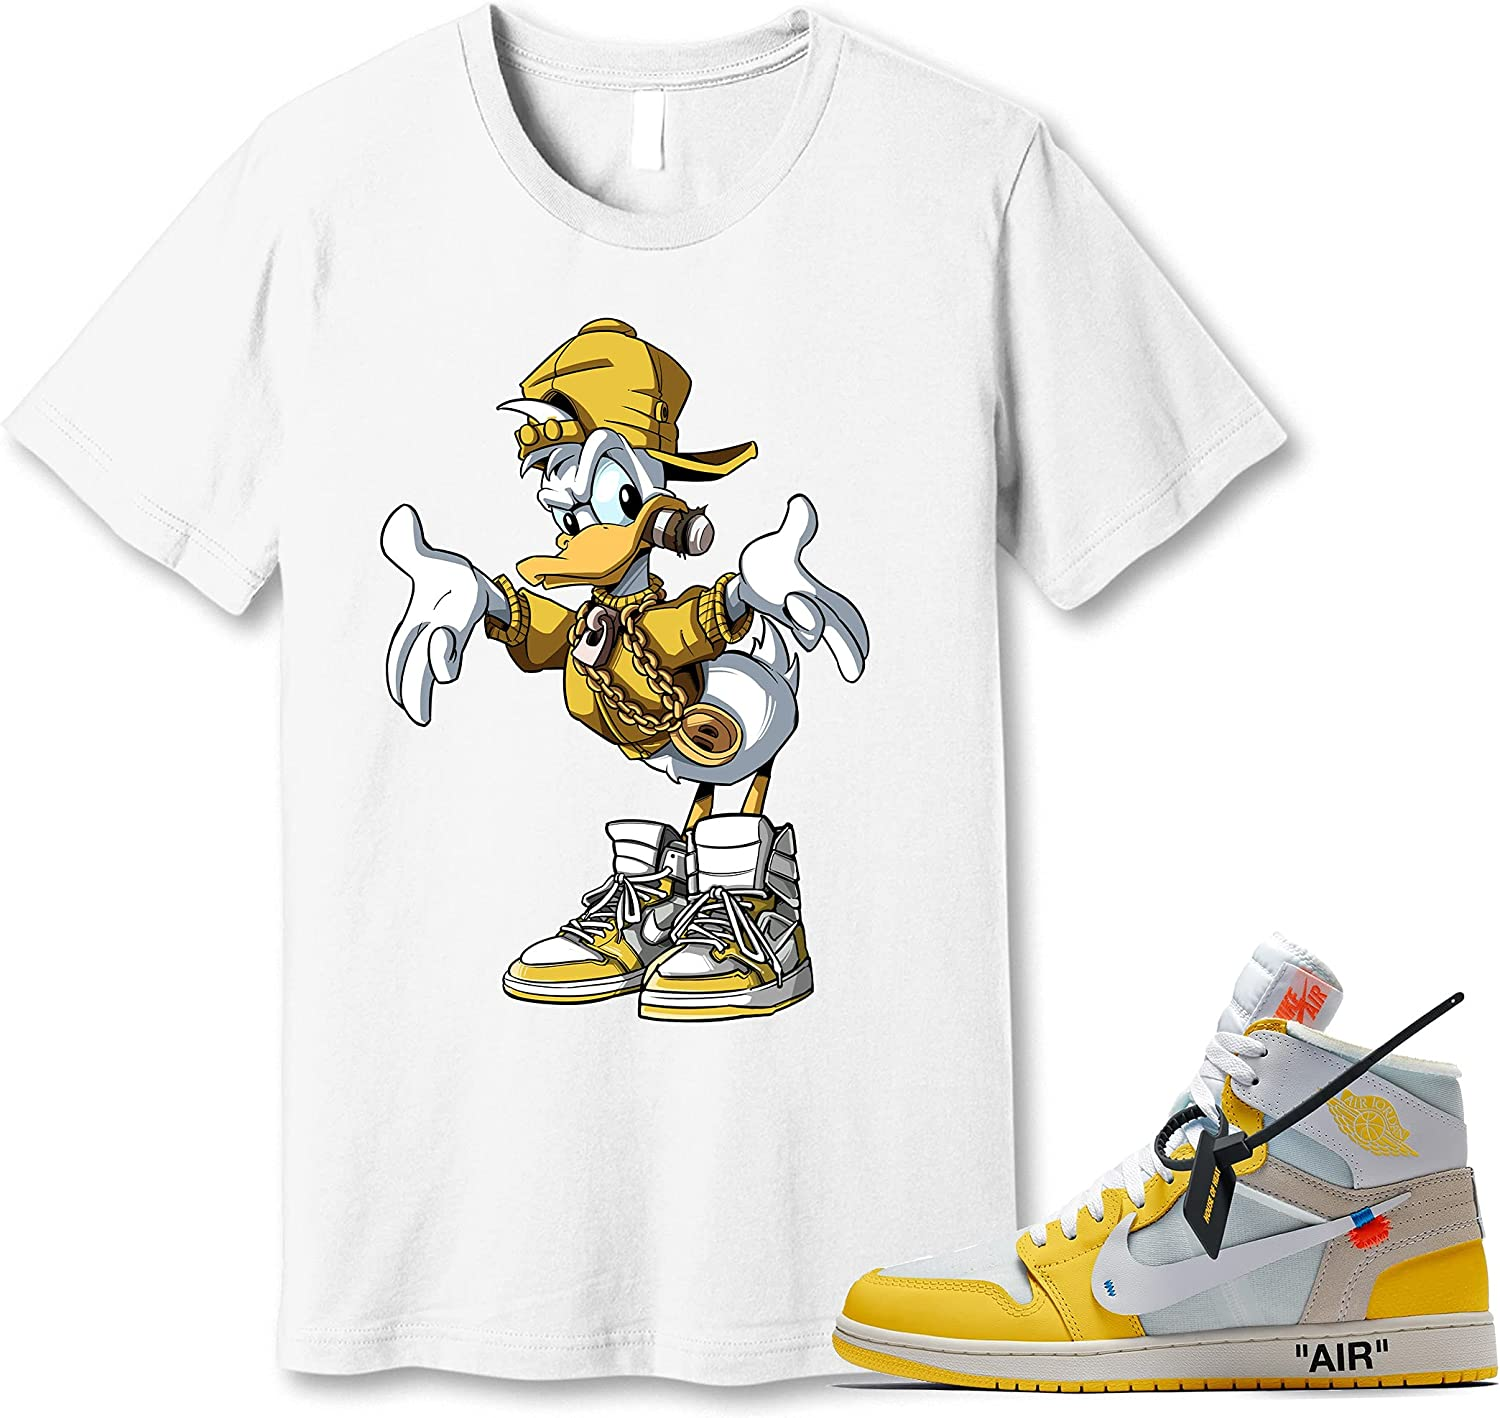 #Donald Lowest price challenge #Duck White Shirt to Match Canary Yellow Sneake Excellence Jordan 1